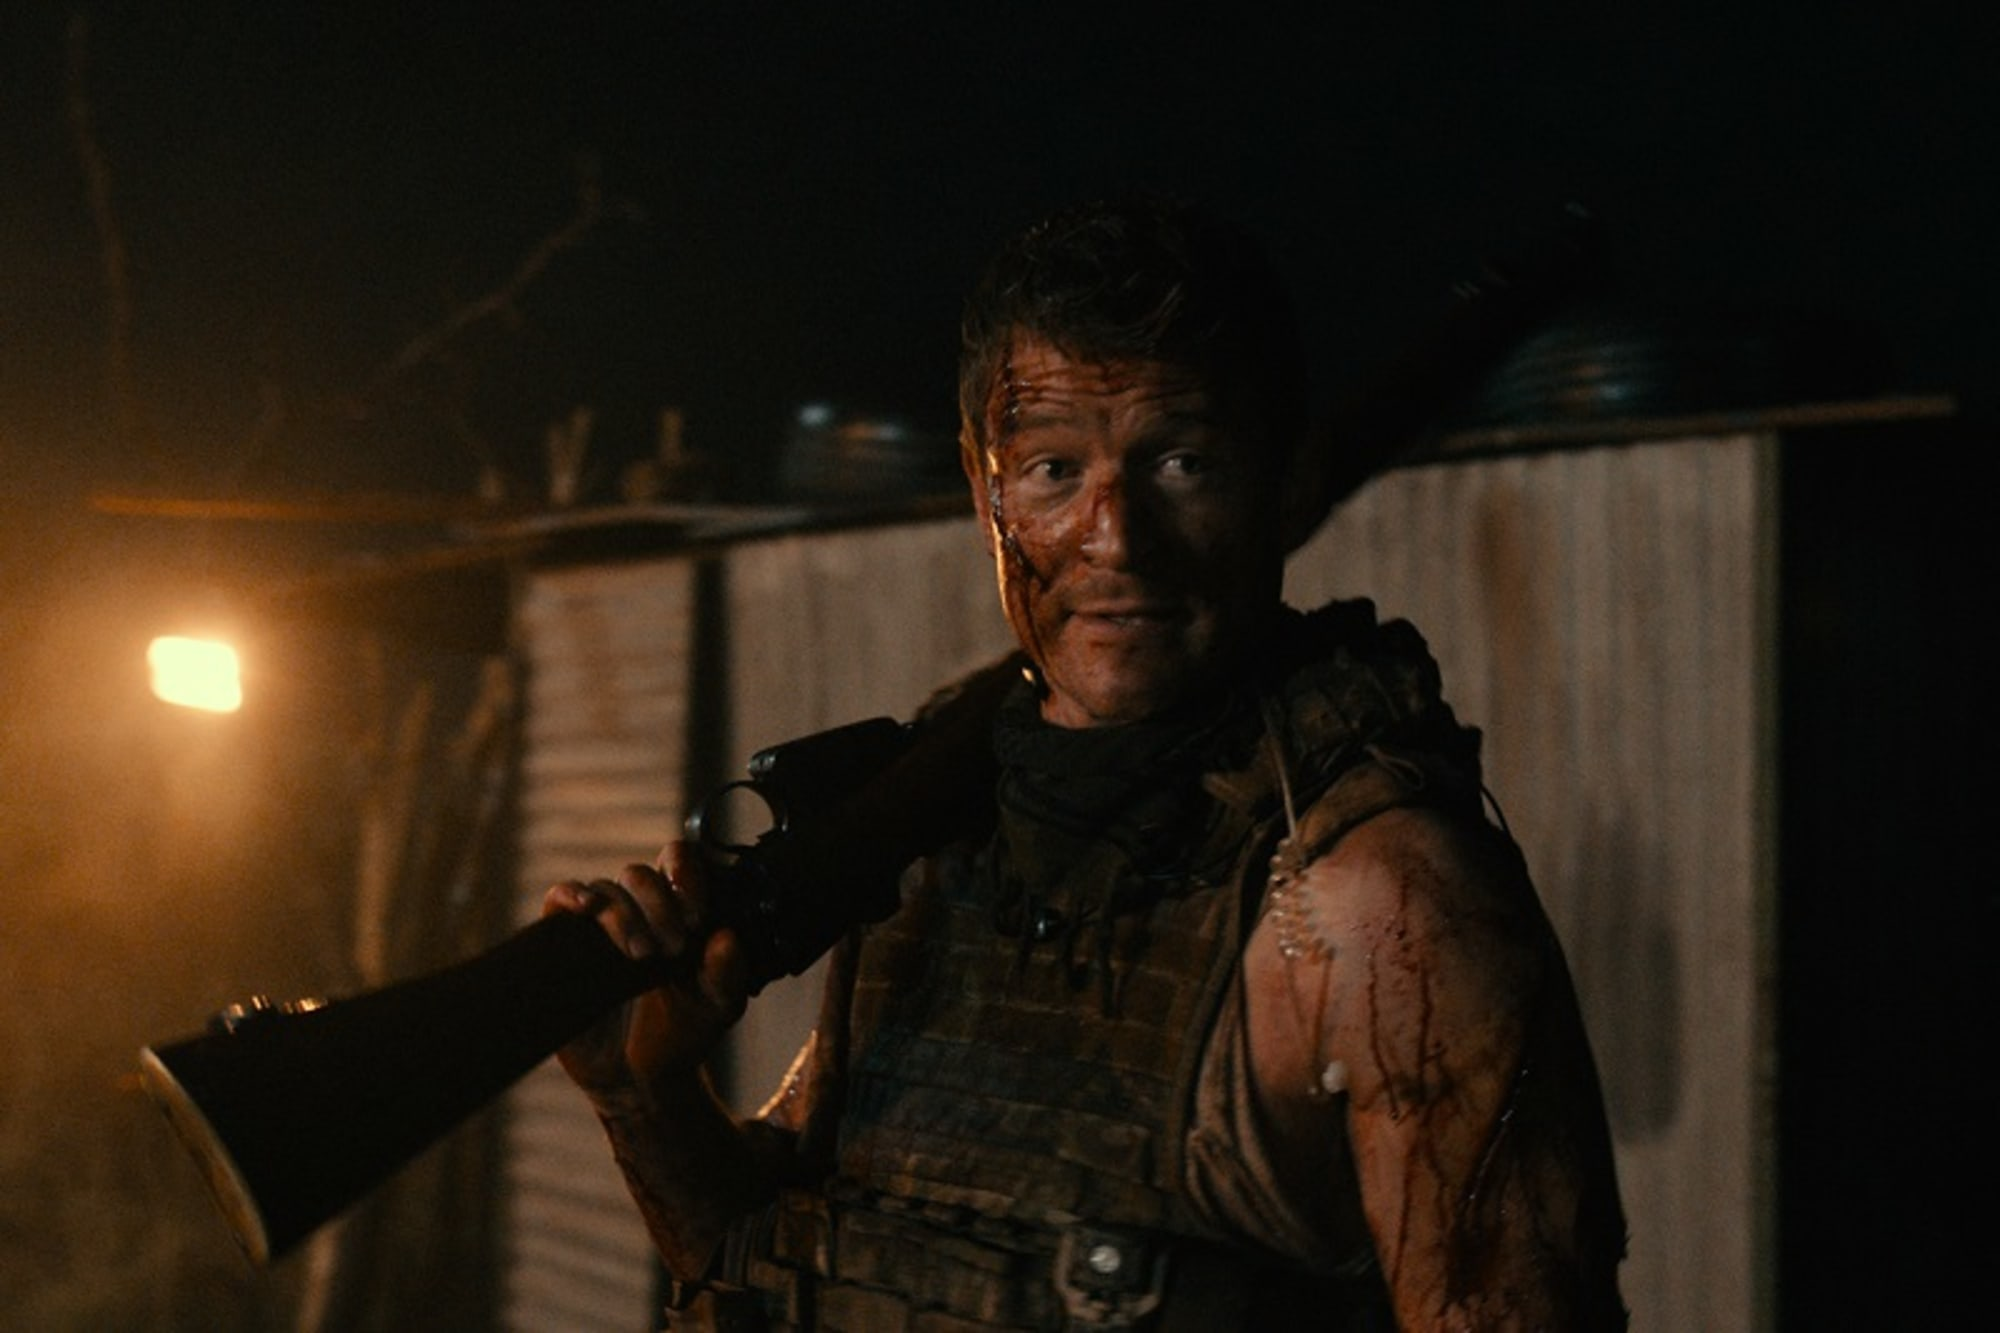 Rogue movie trailer has Chicago Justice's Philip Winchester fighting lions